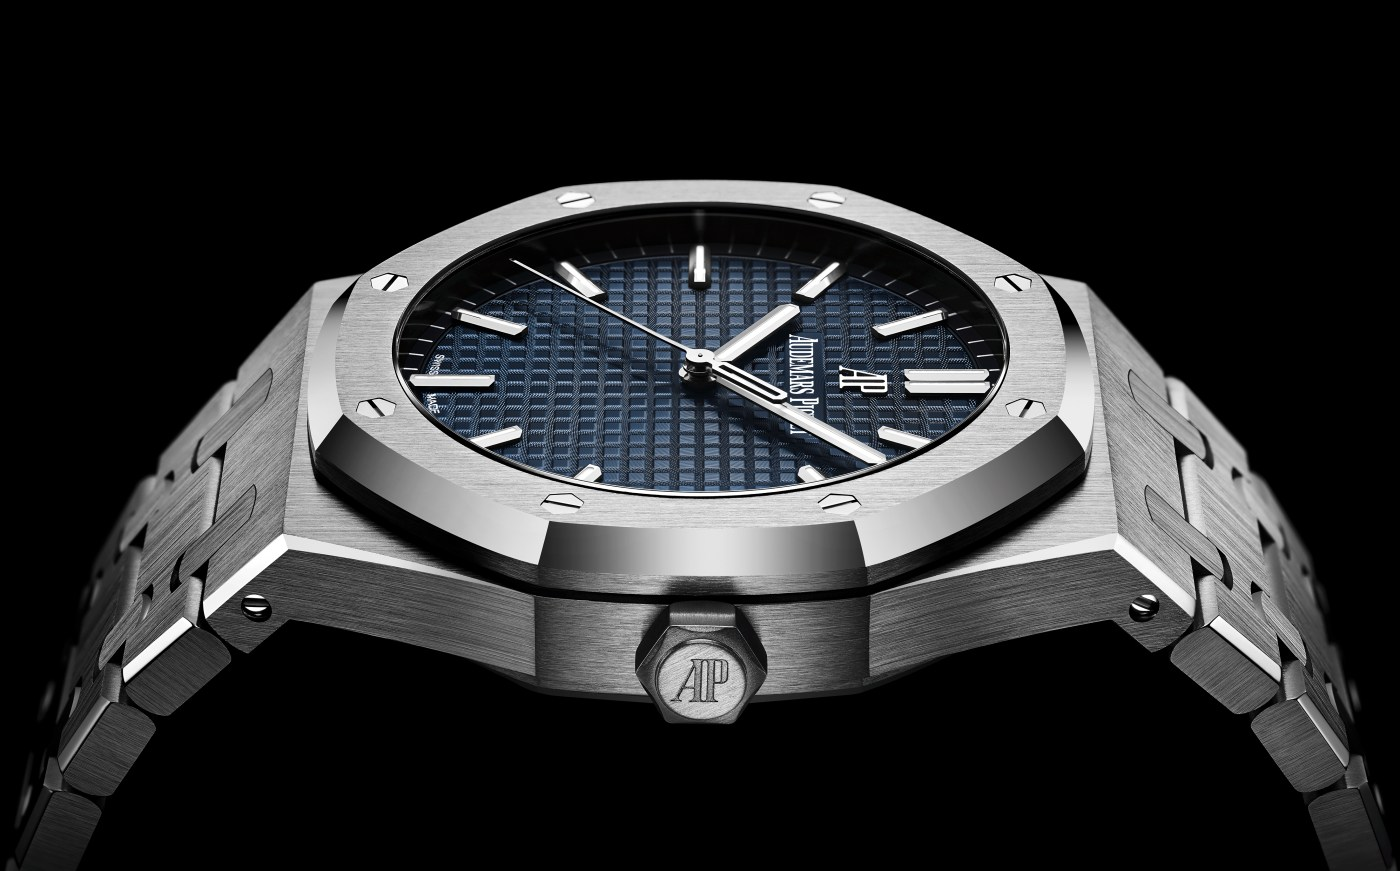 Audemars Piguet Royal Oak 15500 crown shot